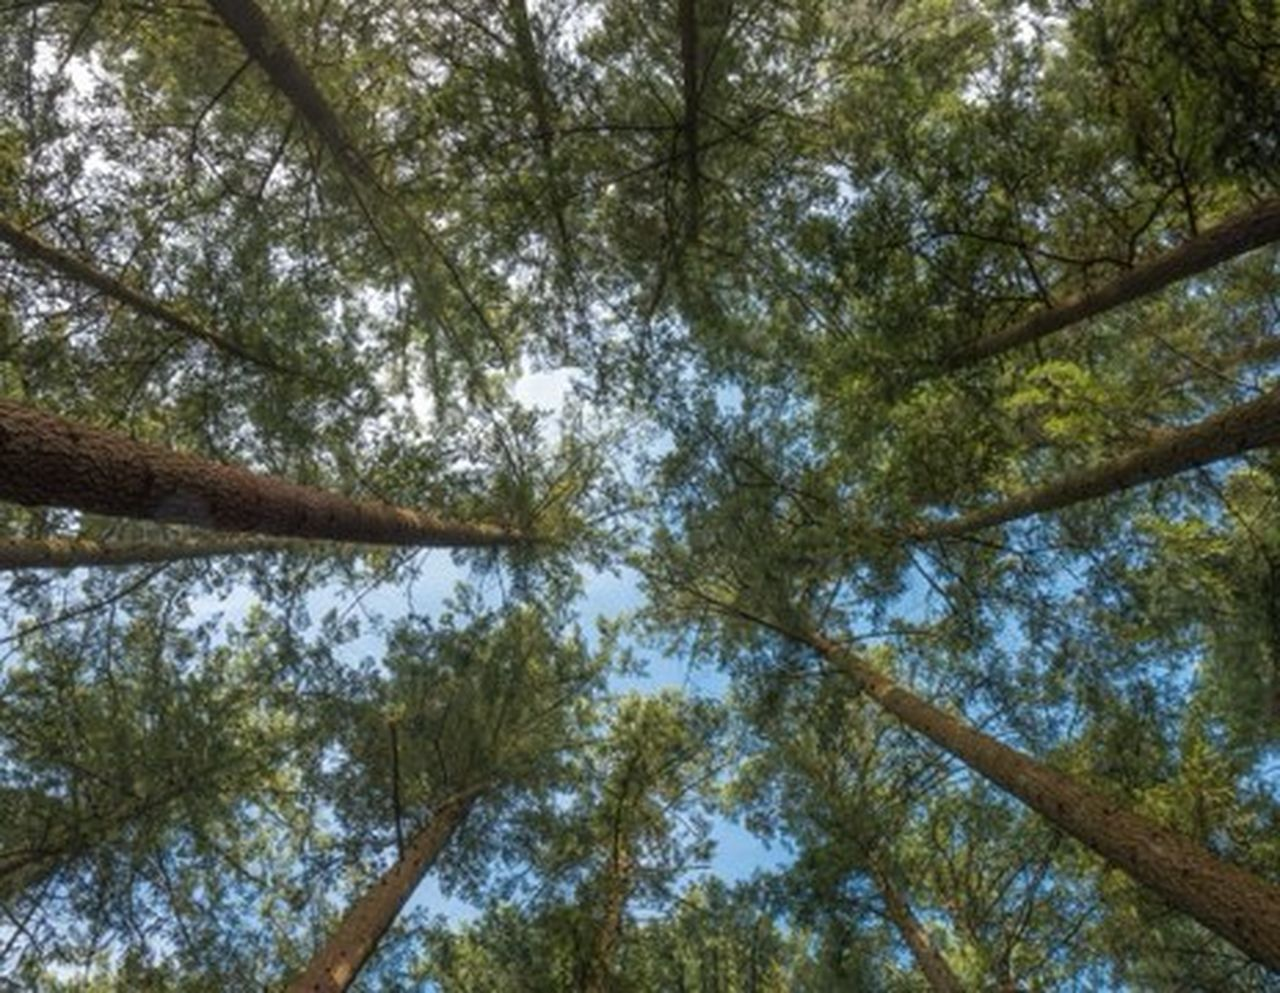 tree, low angle view, plant, forest, nature, day, beauty in nature, branch, tree canopy, sky, woodland, outdoors, land, no people, growth, directly below, tall - high, tranquility, plant part, full frame, bamboo - plant